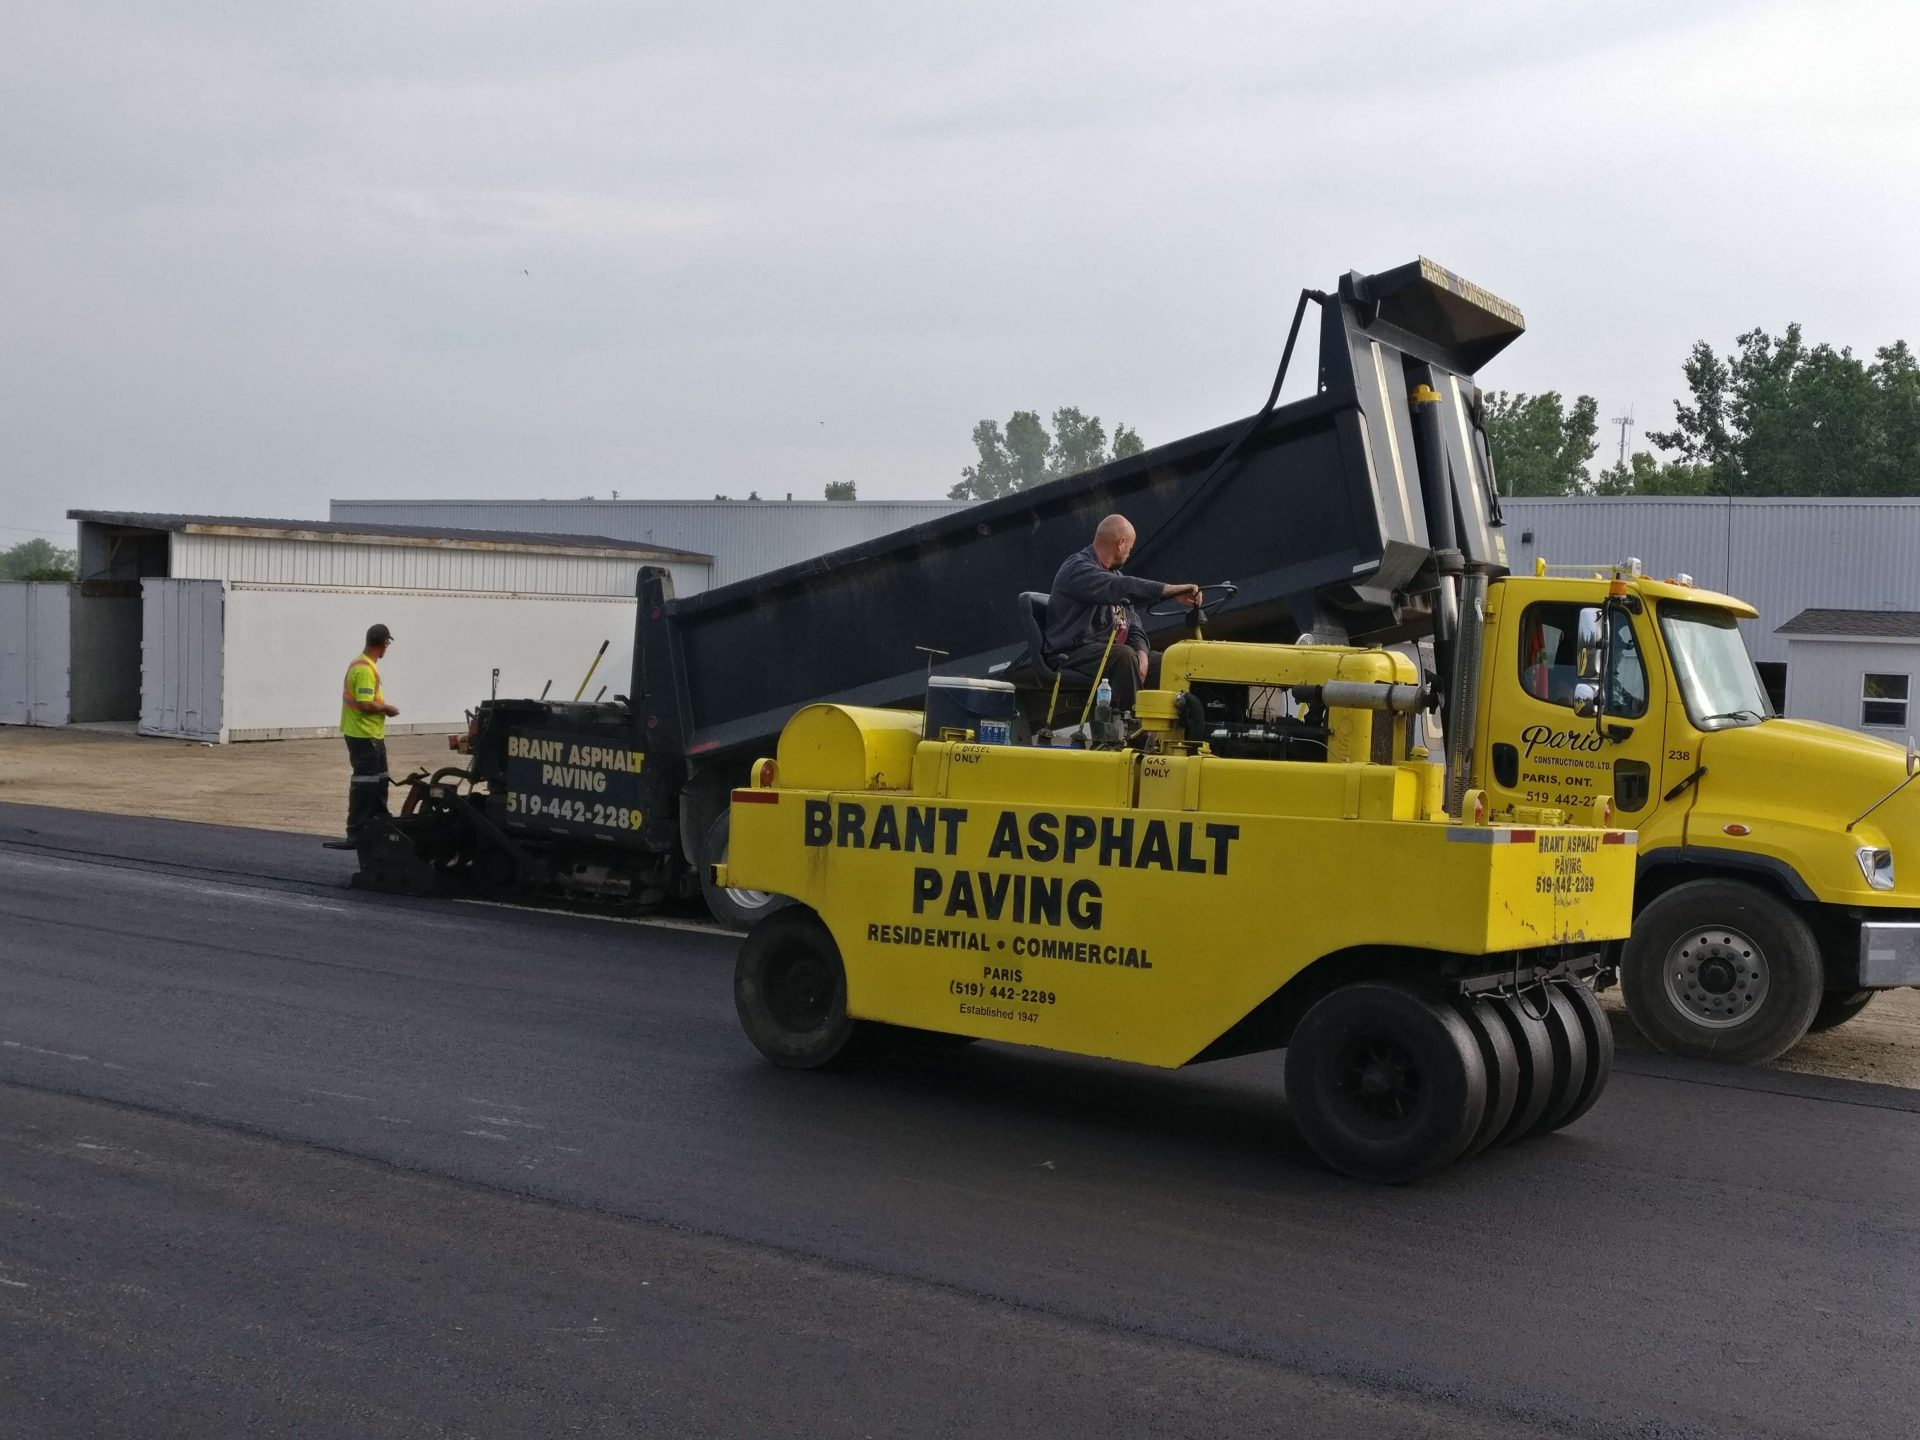 Brant Asphalt Paving commercial trucks